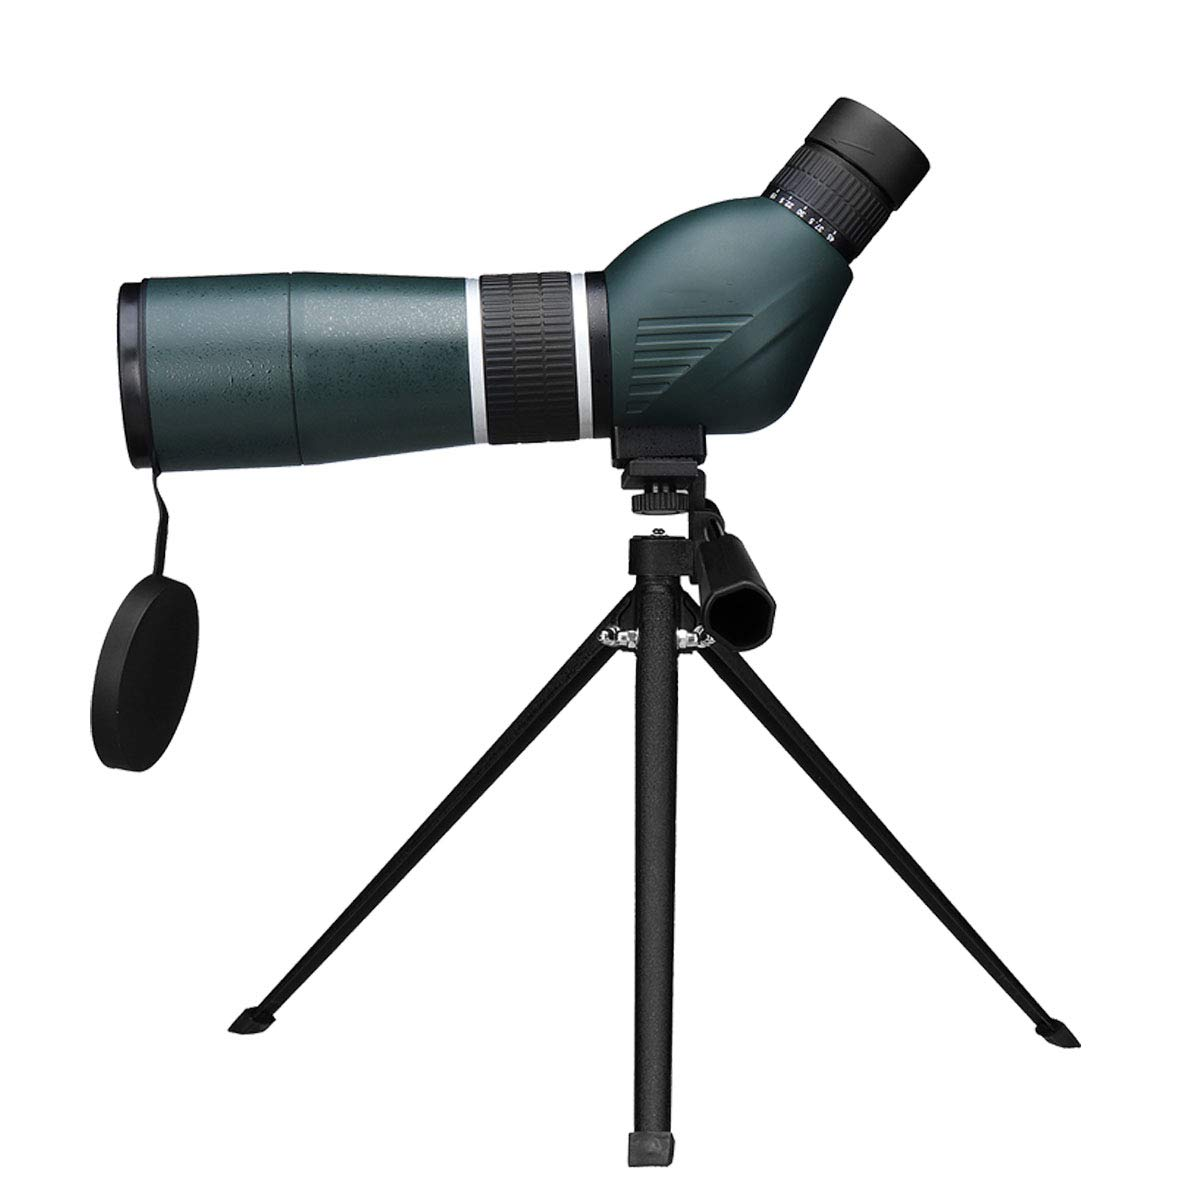 Jzmae New 15-45x60 Monocular Binoculars Night Vision Waterproof HD Zoom View Range Telescope + Tripod and Clips for iPhone Xs for Android by Jzmae